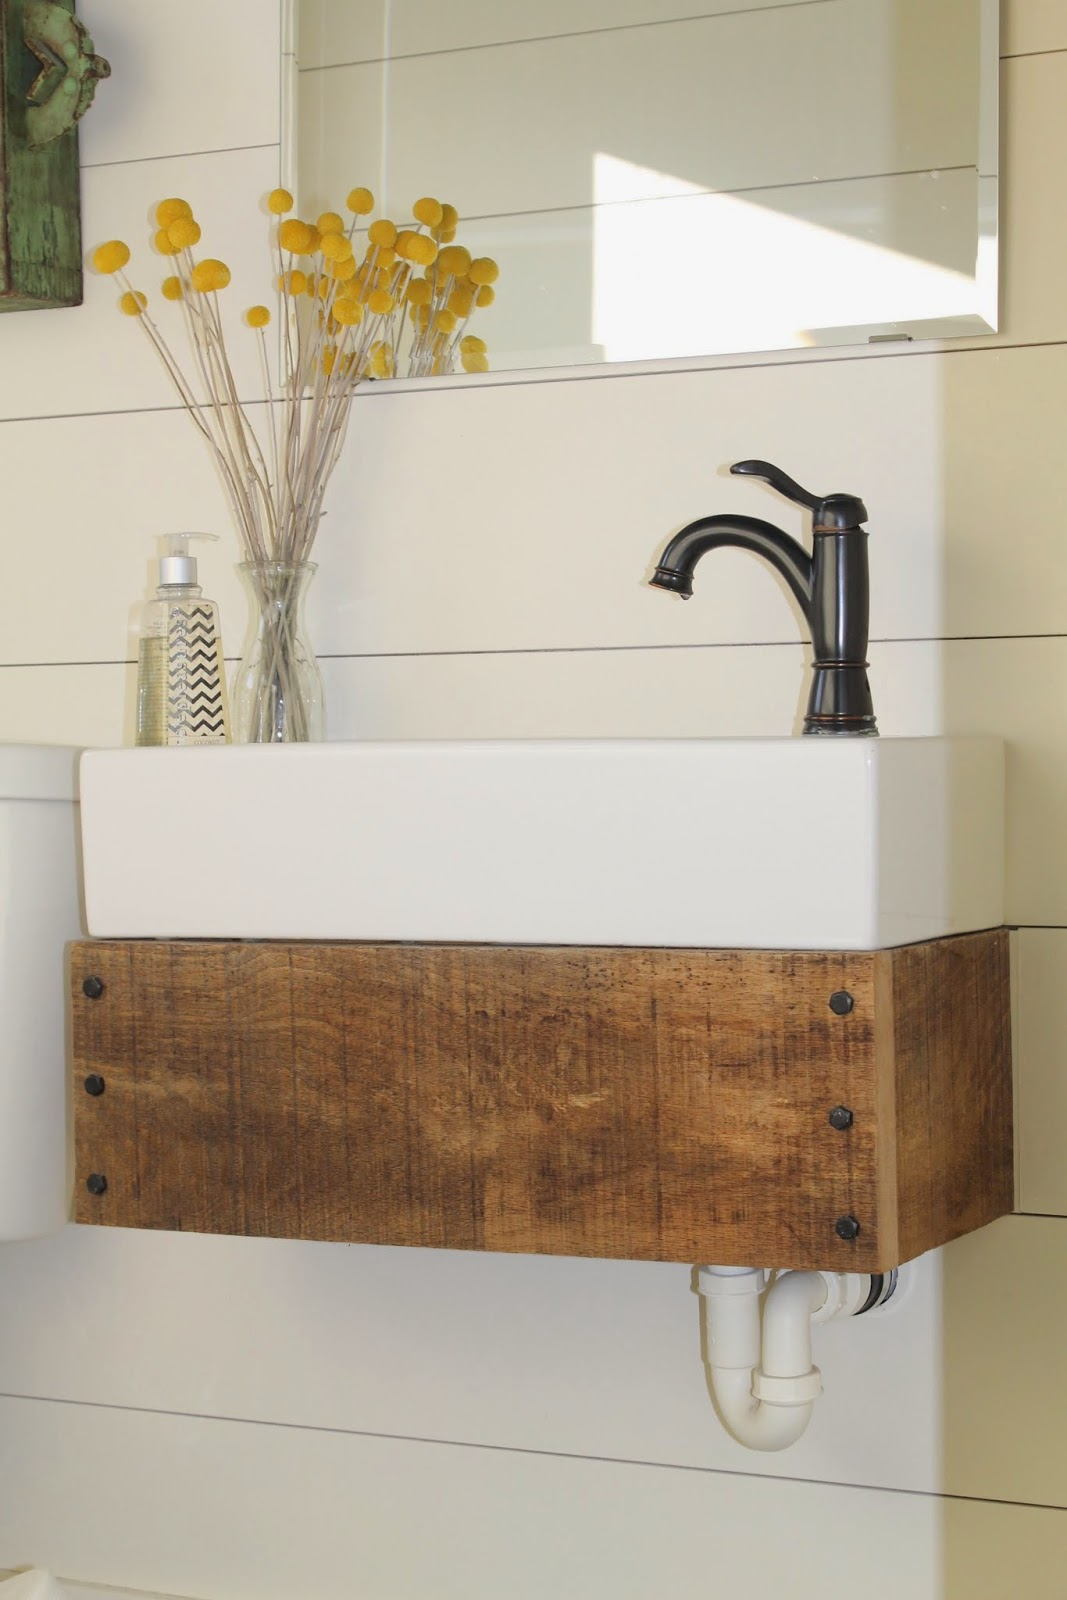 Cool DIY floating vanity from reclaimed wood Girl Meets Carpenter featured on Remodelaholic